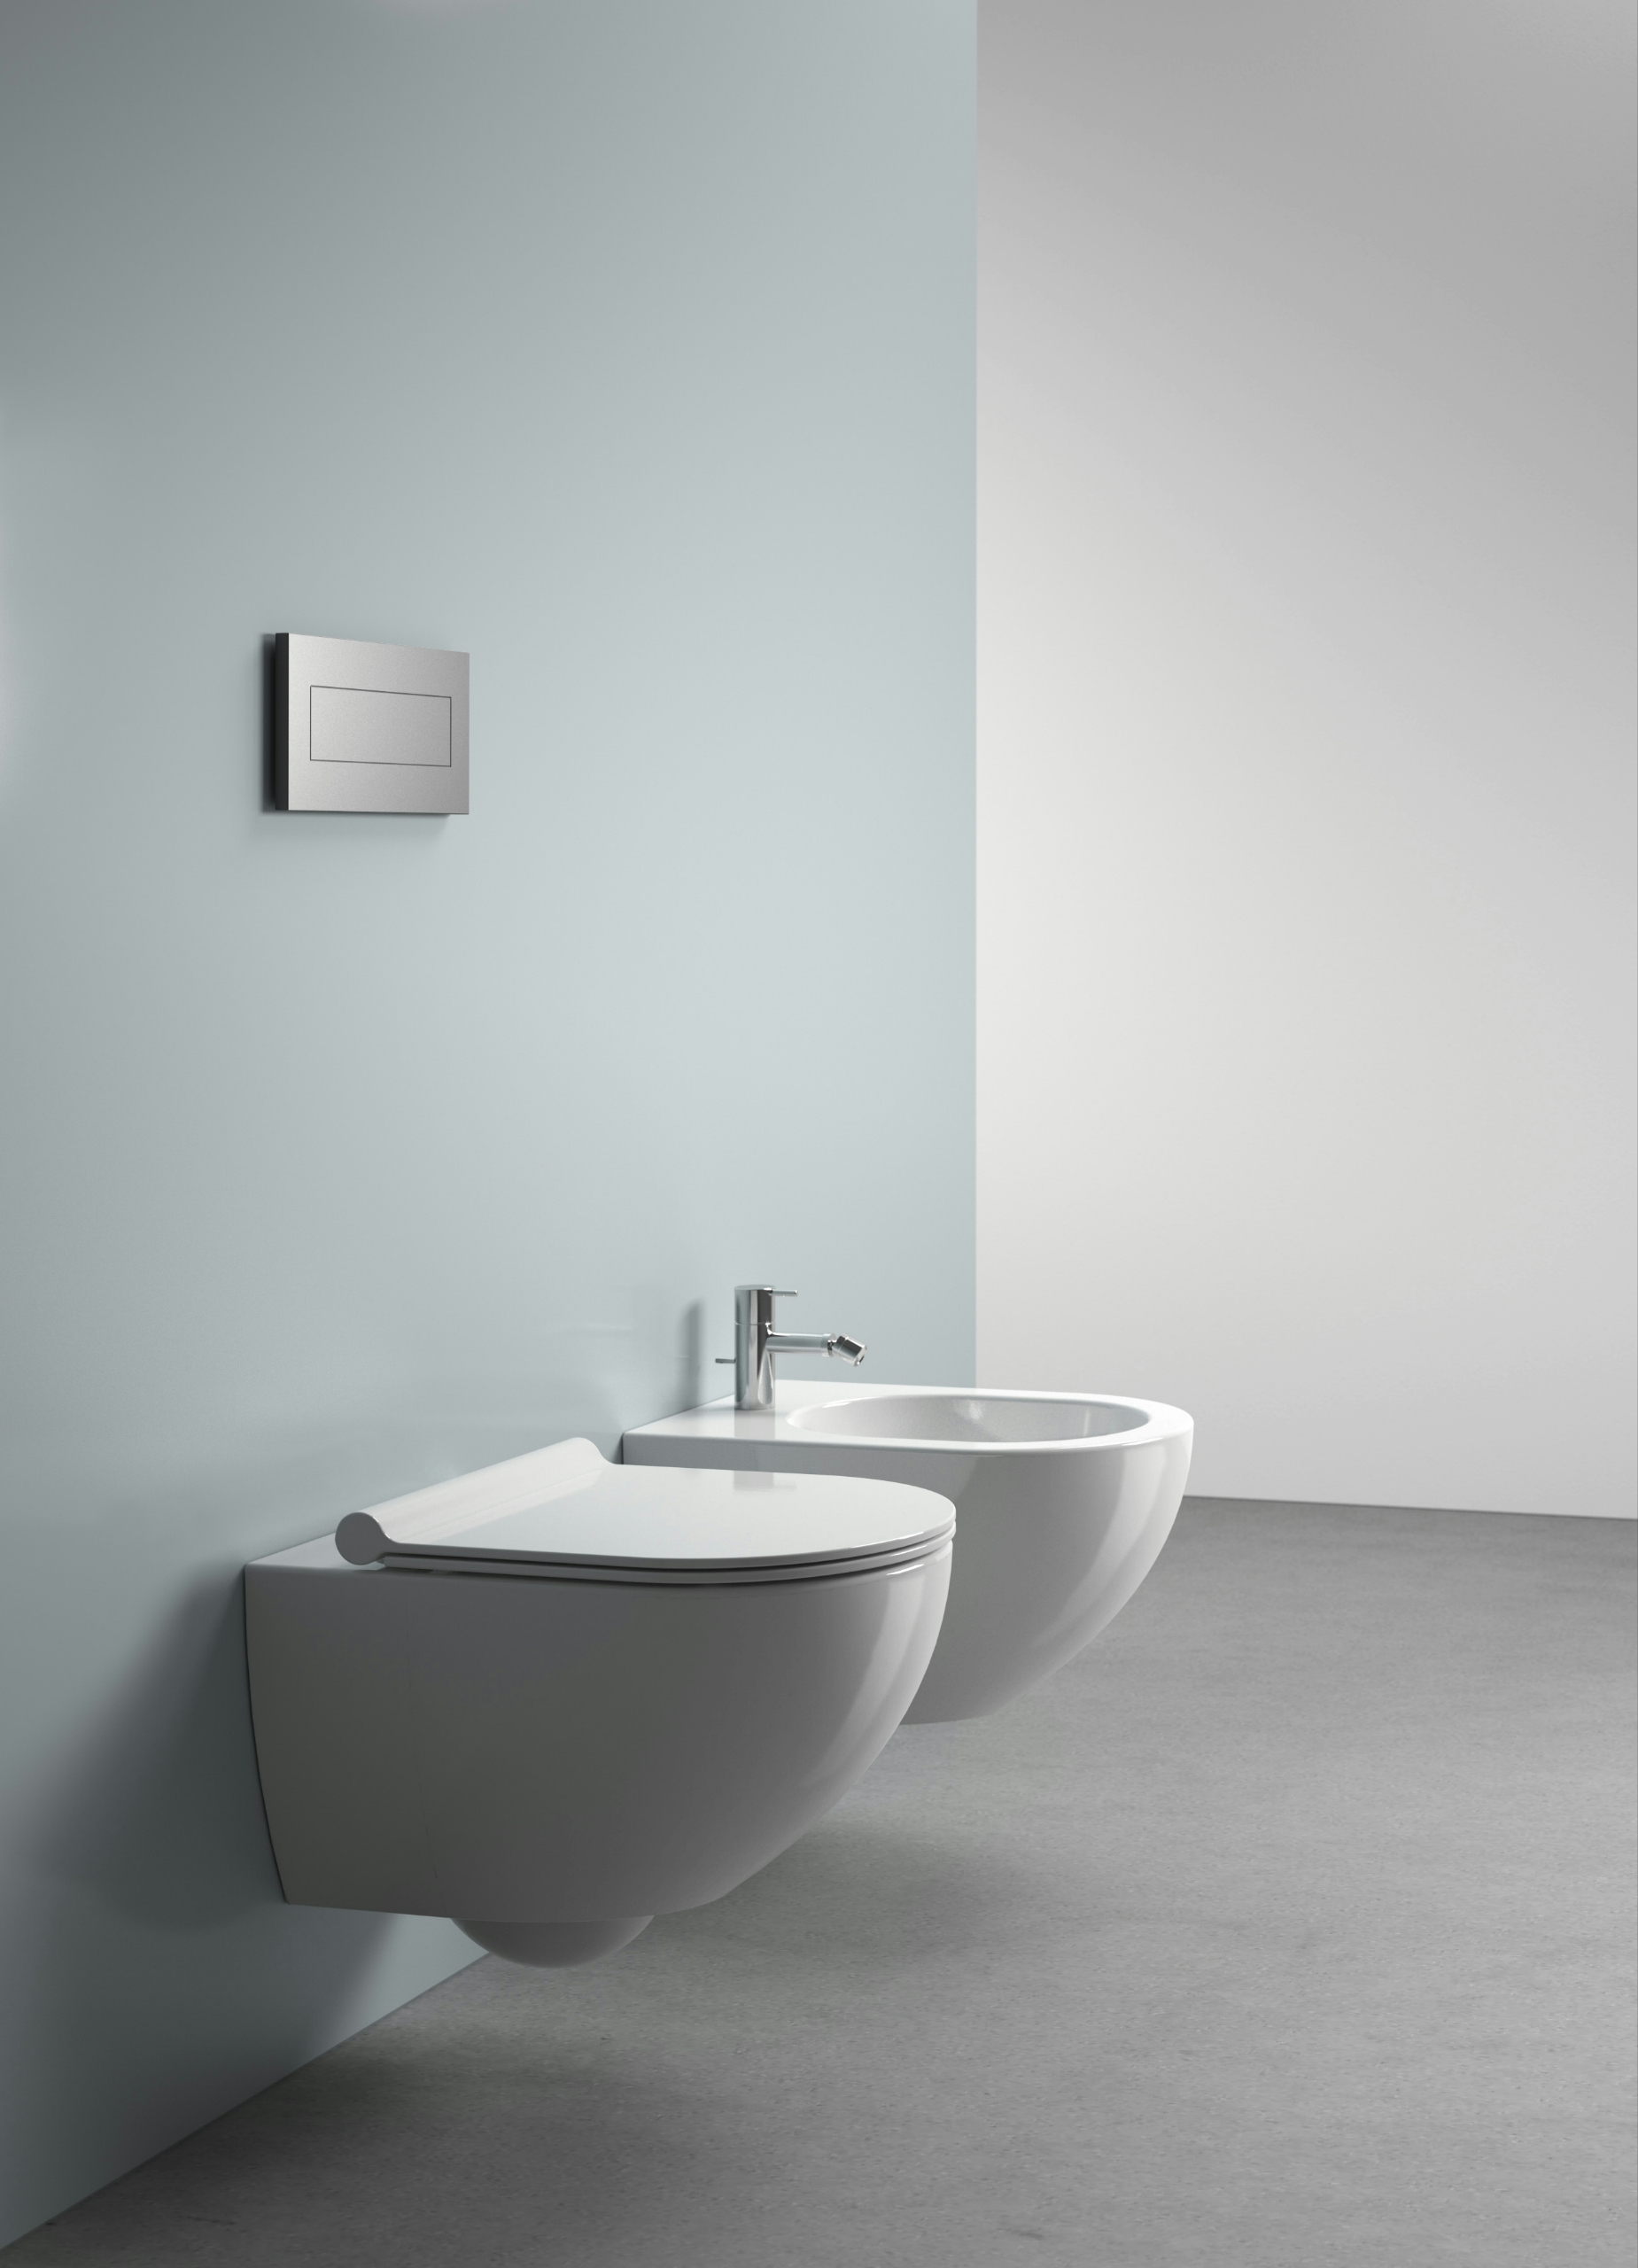 Sfera 50 wc by ceramica catalano for Leroy merlin catalogo generale